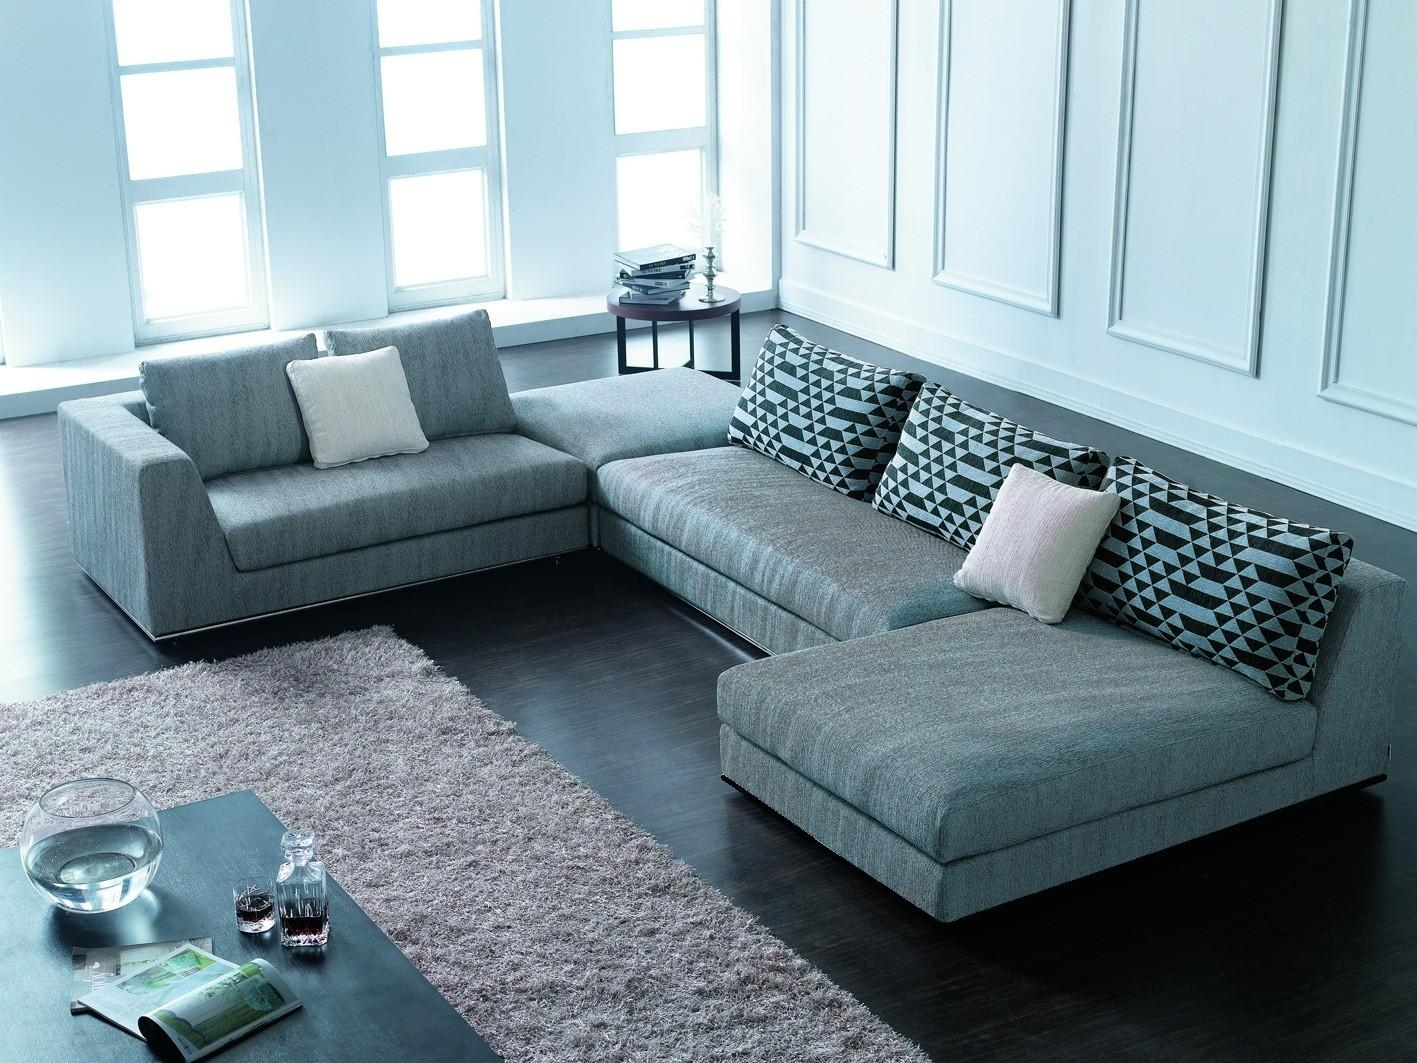 Modern Sofas Sectionals – Revistapacheco Regarding Modern Sofas Sectionals (View 4 of 21)